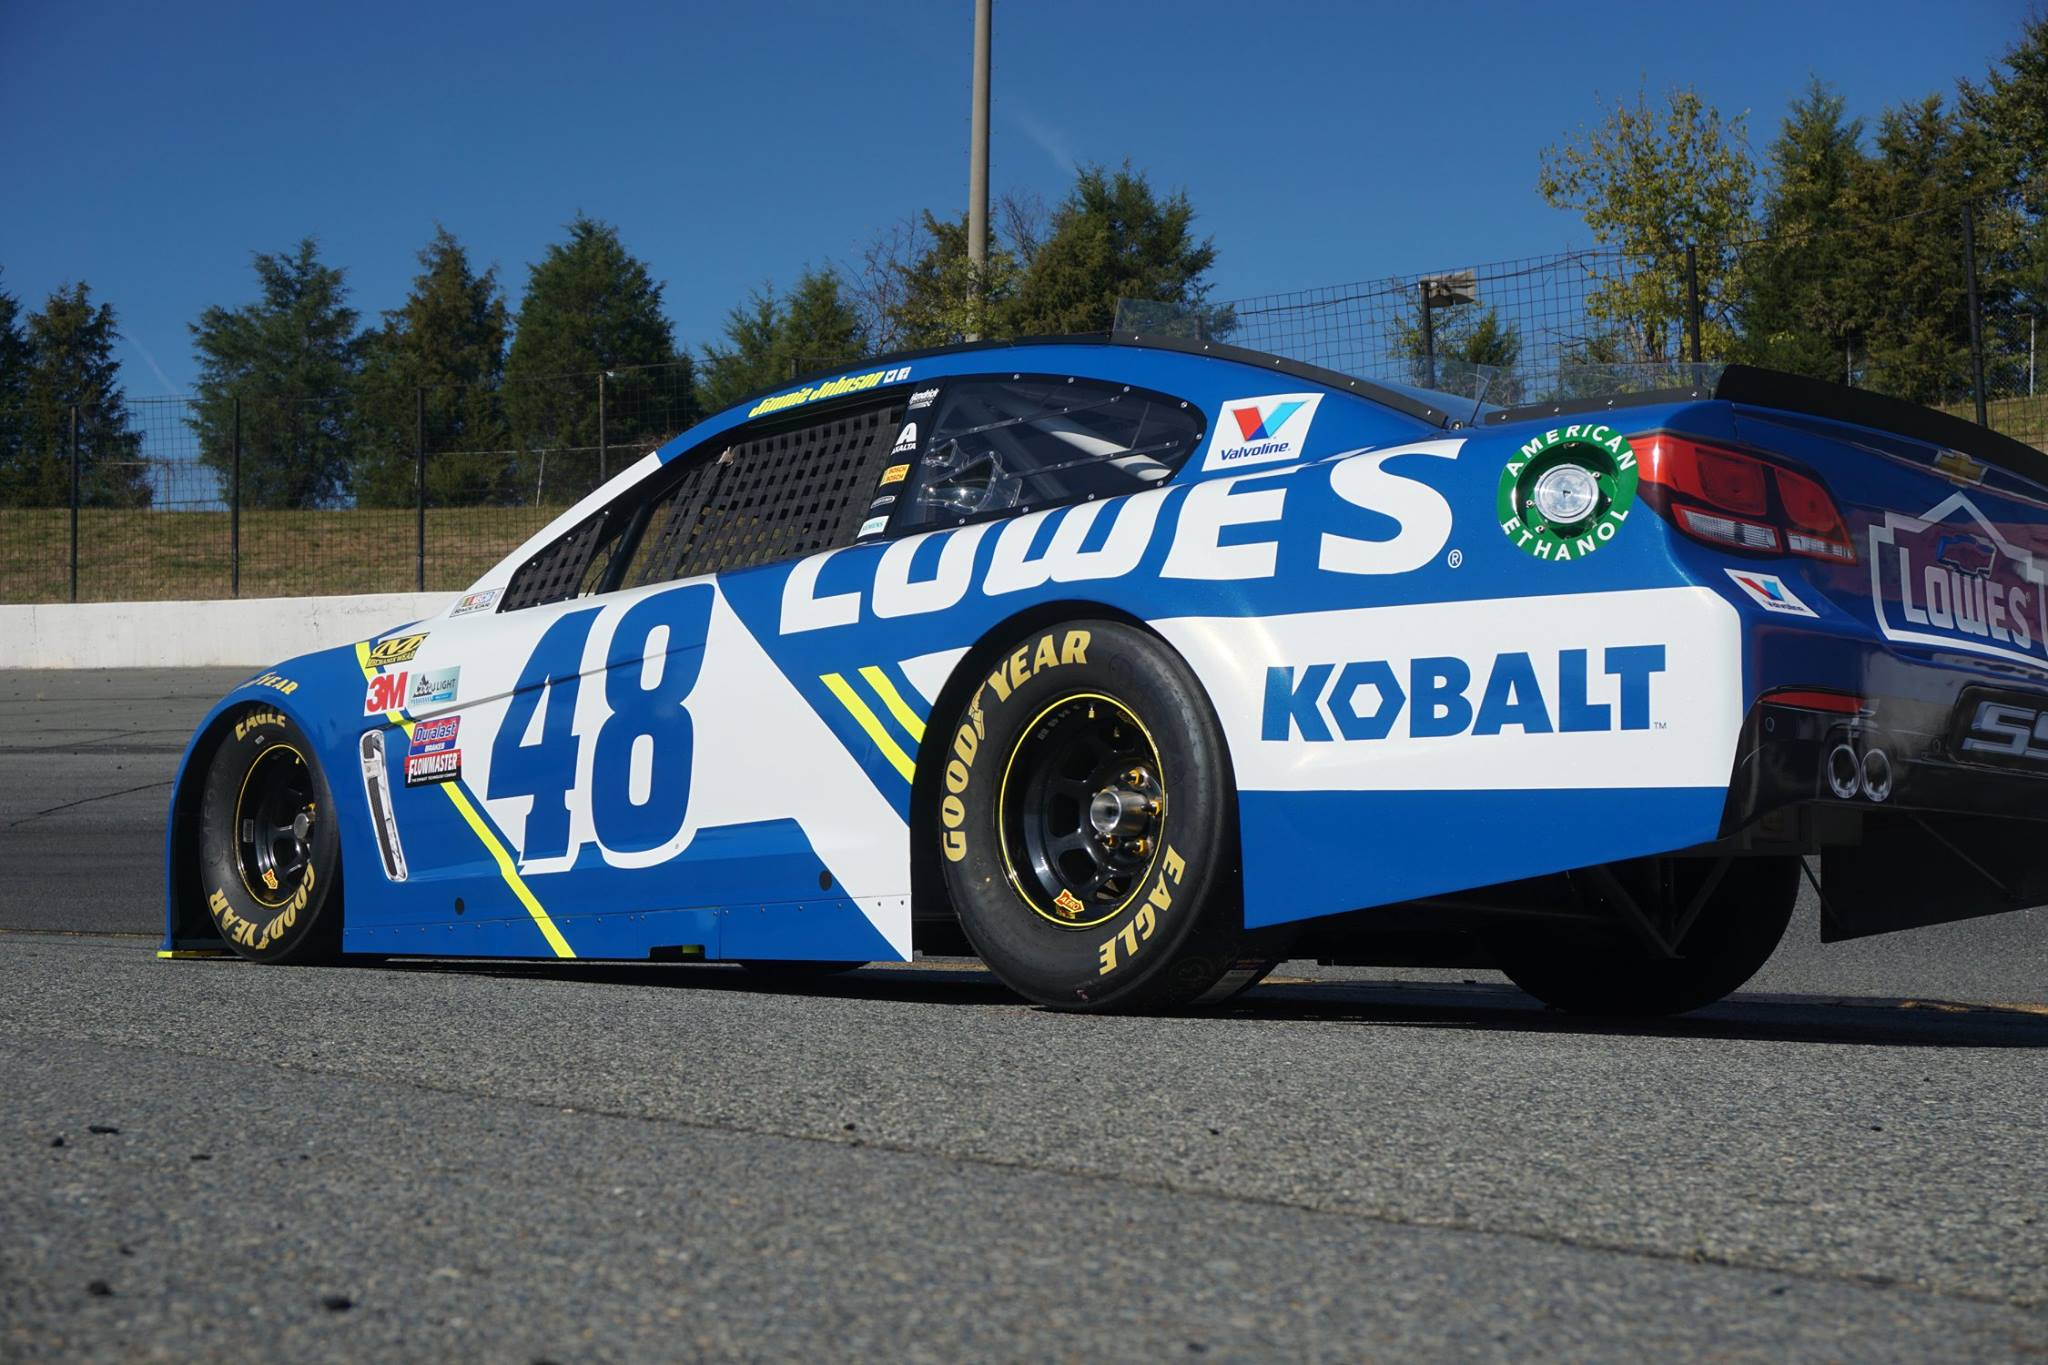 Jimmie Johnson Car Photos Lowes Kobalt Racecars Nascar